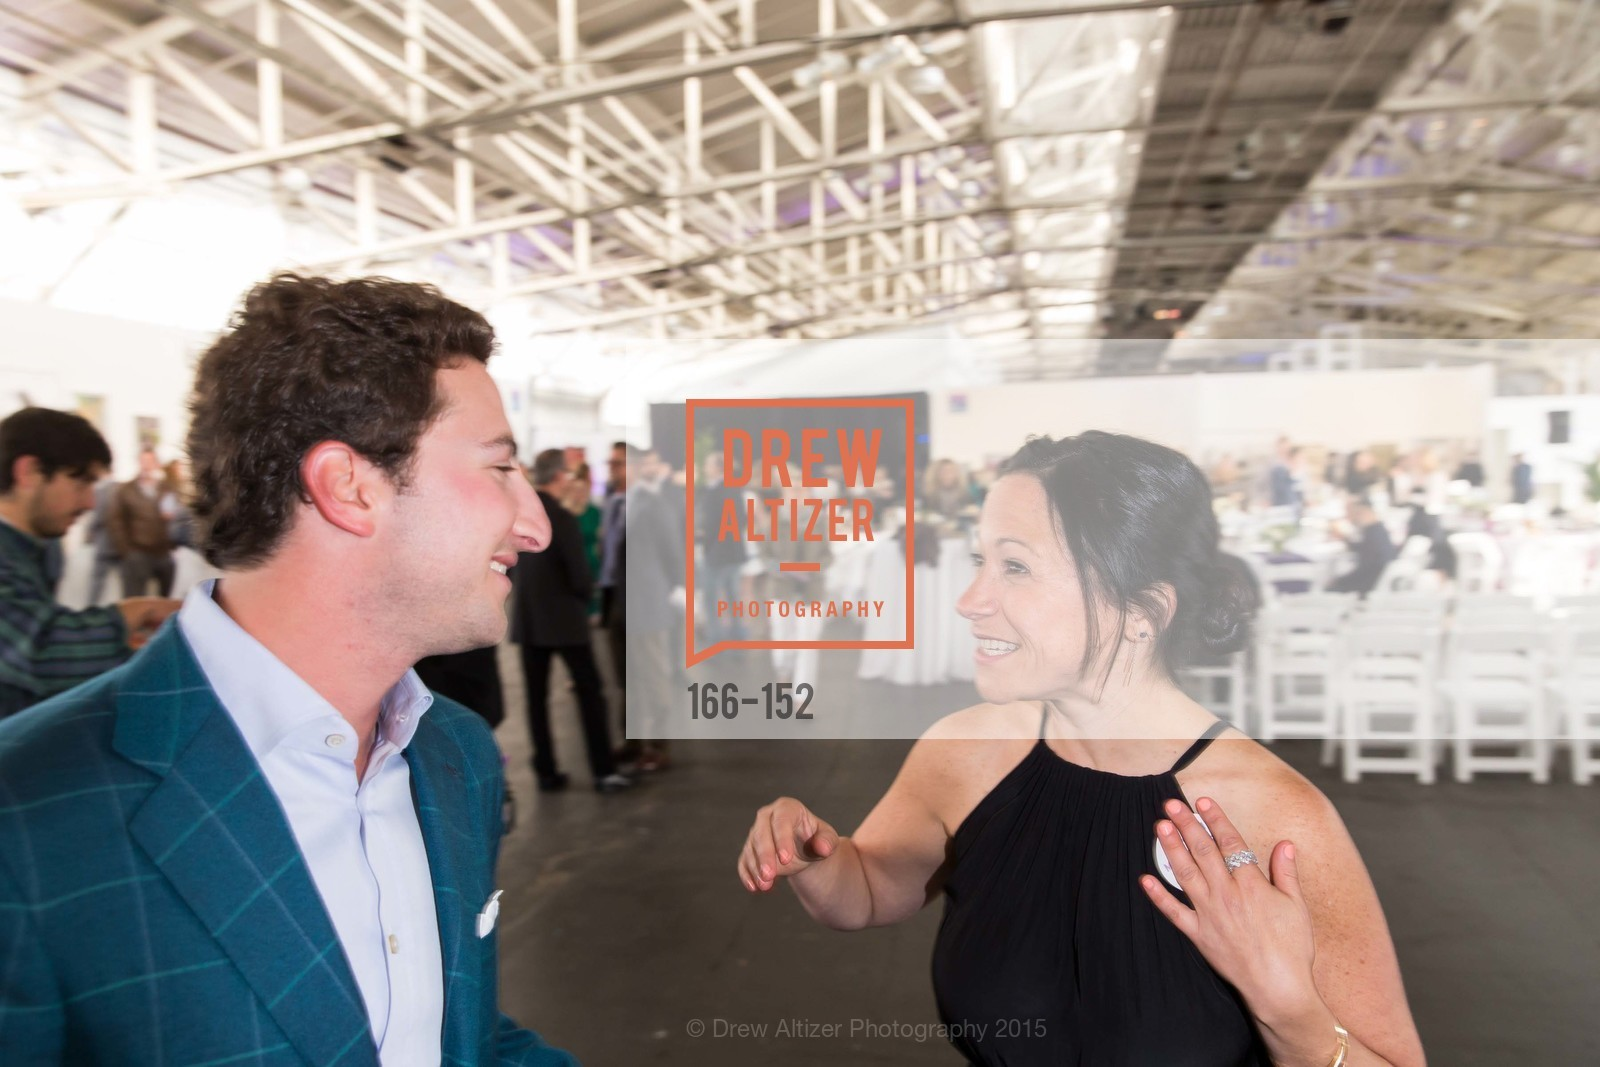 Jason Goldman, Sharon Maidenberg, Headlands Center for the Arts Benefit Auction, Fort Mason Festival, Pavilon, June 2nd, 2015,Drew Altizer, Drew Altizer Photography, full-service agency, private events, San Francisco photographer, photographer california